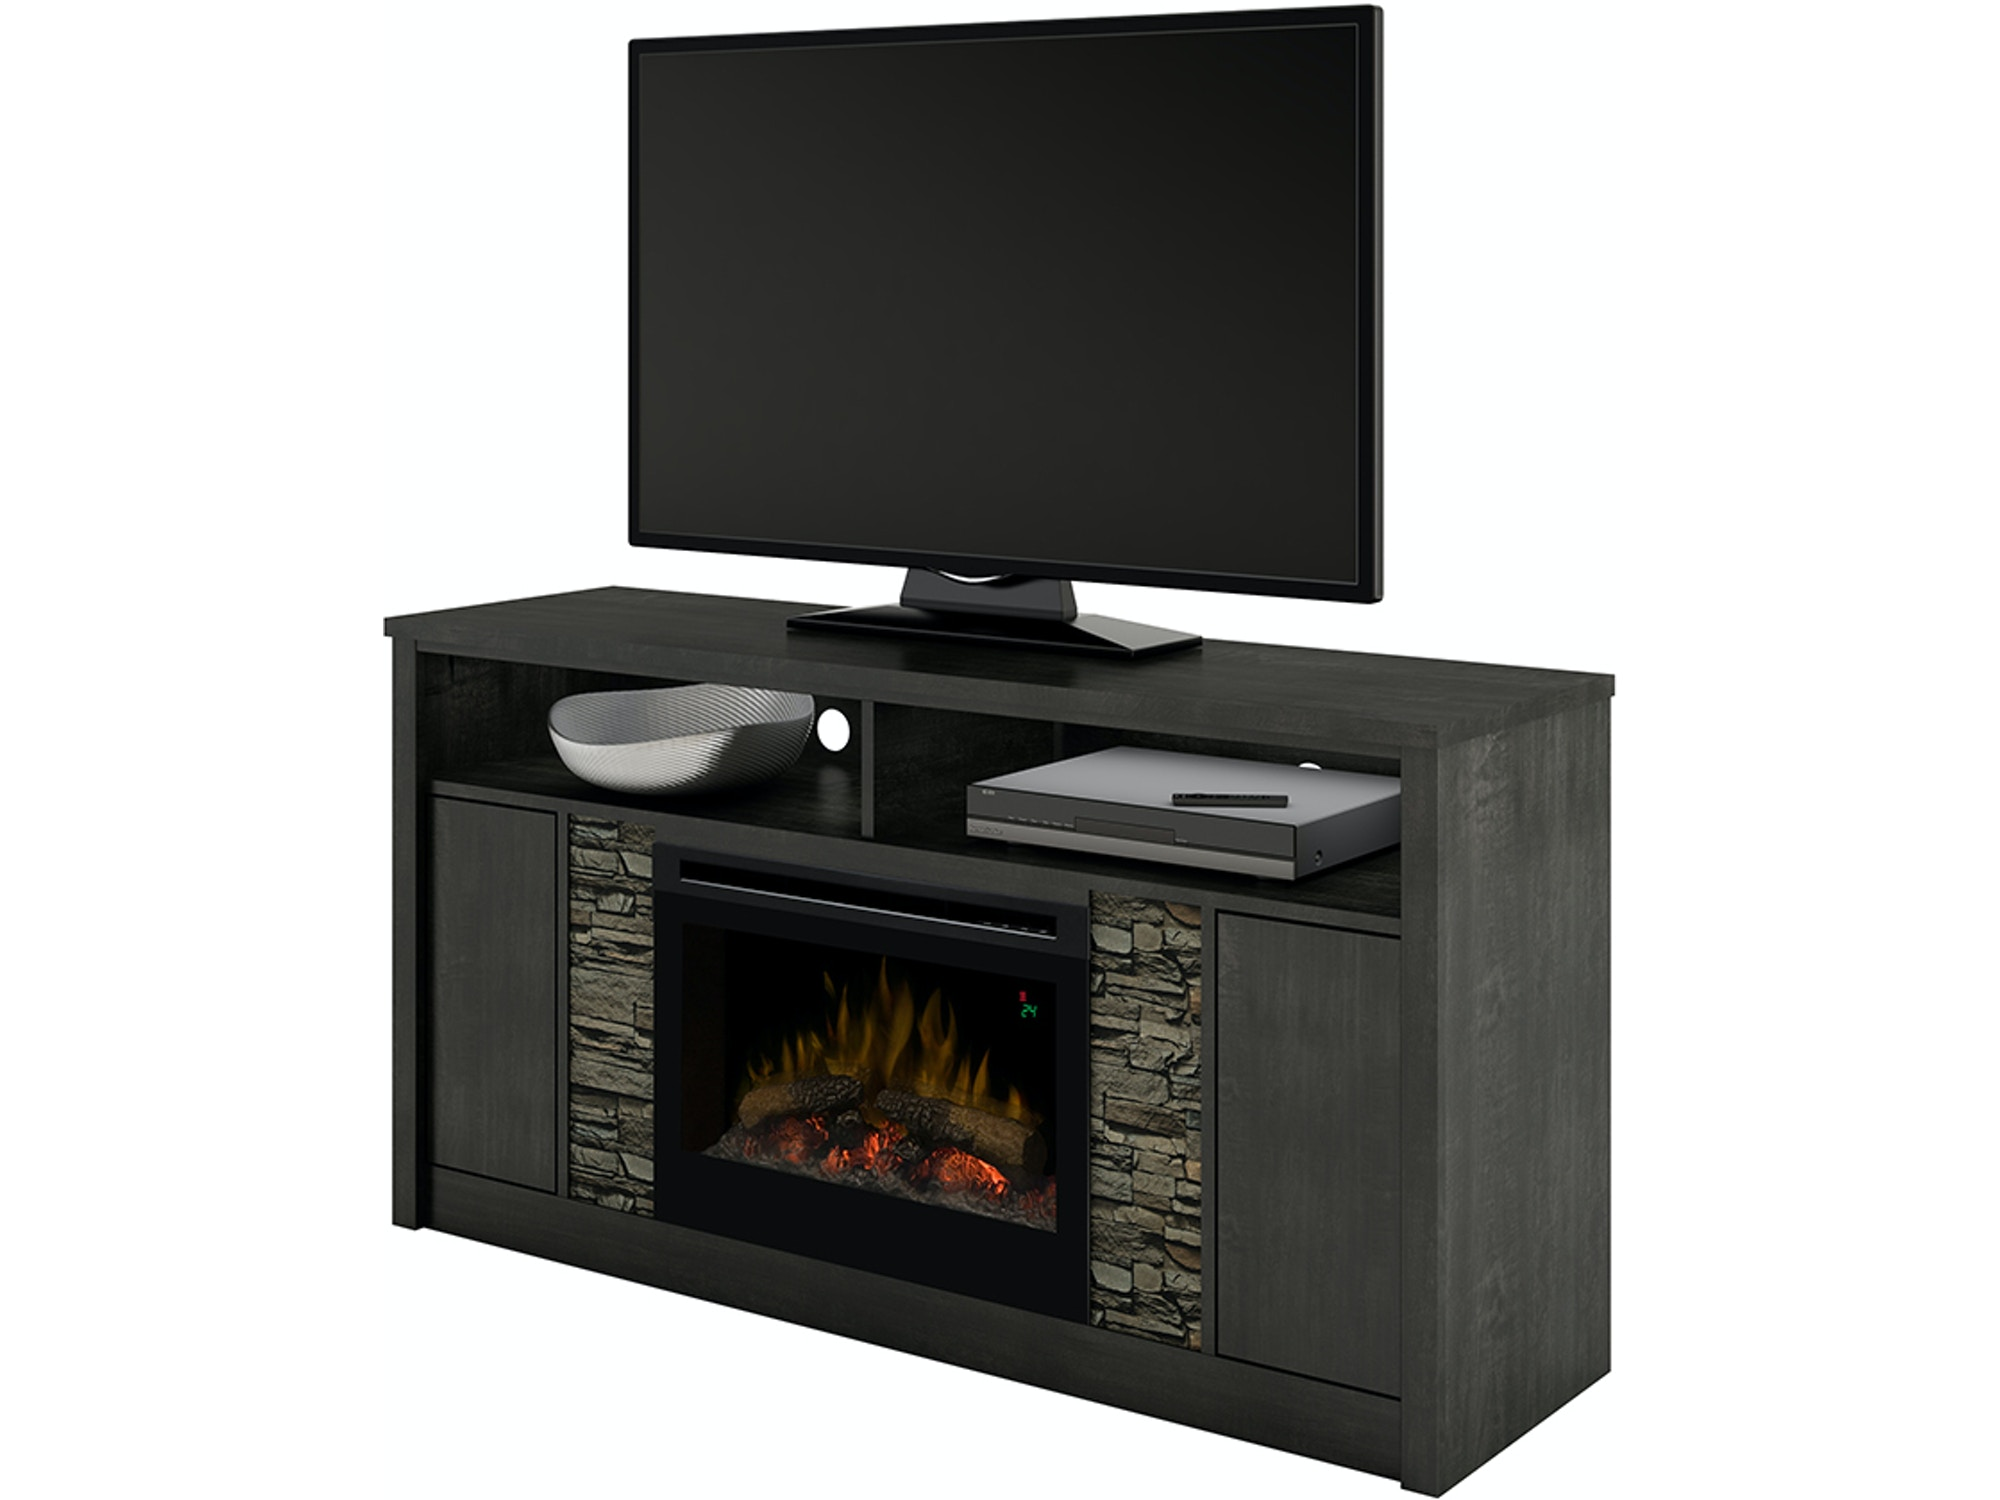 stillwater custom fireplace cabinets mn ins built valley cabinetry media center